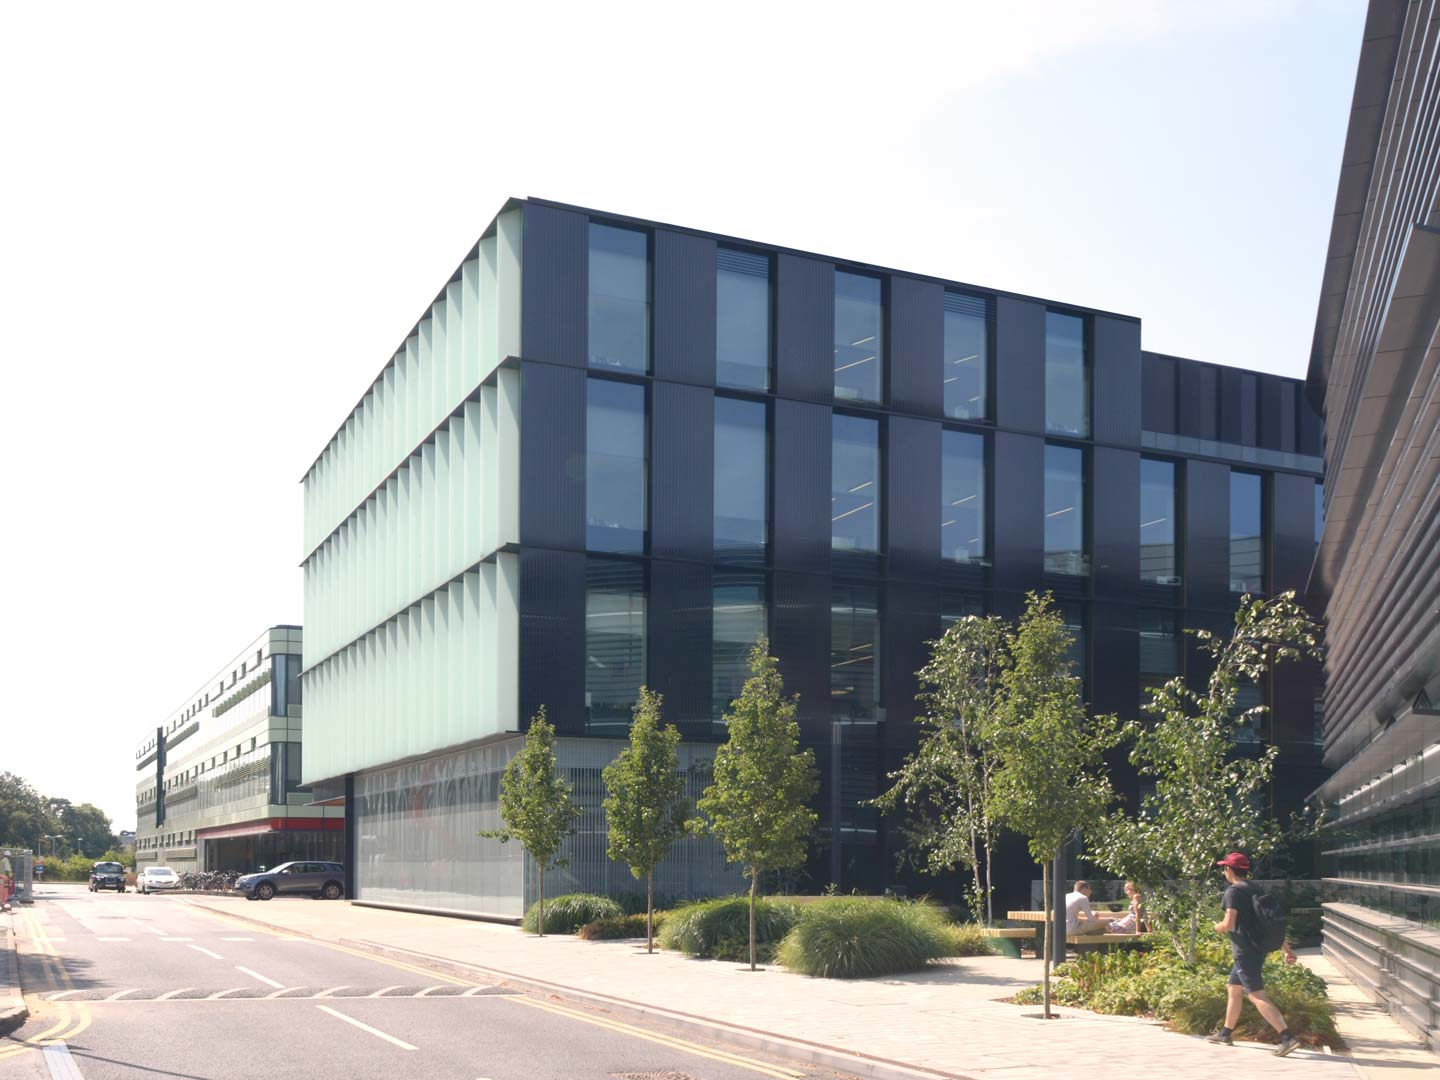 Kennedy Institute of Rheumatology extension